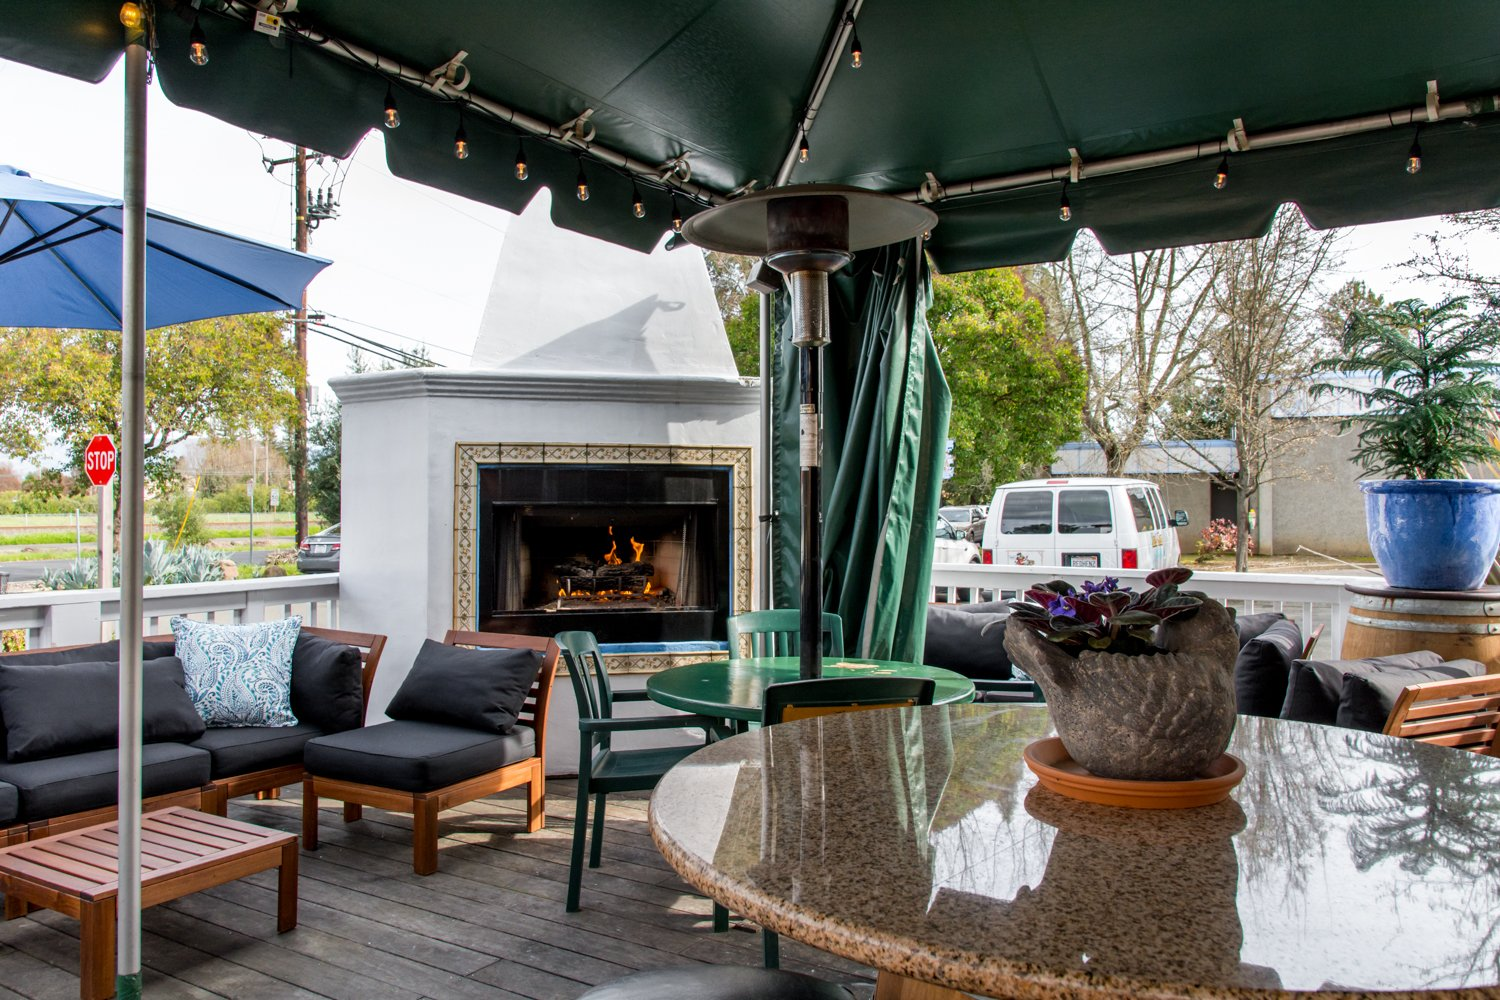 Red Hen Bar and Grill patio and fireplace